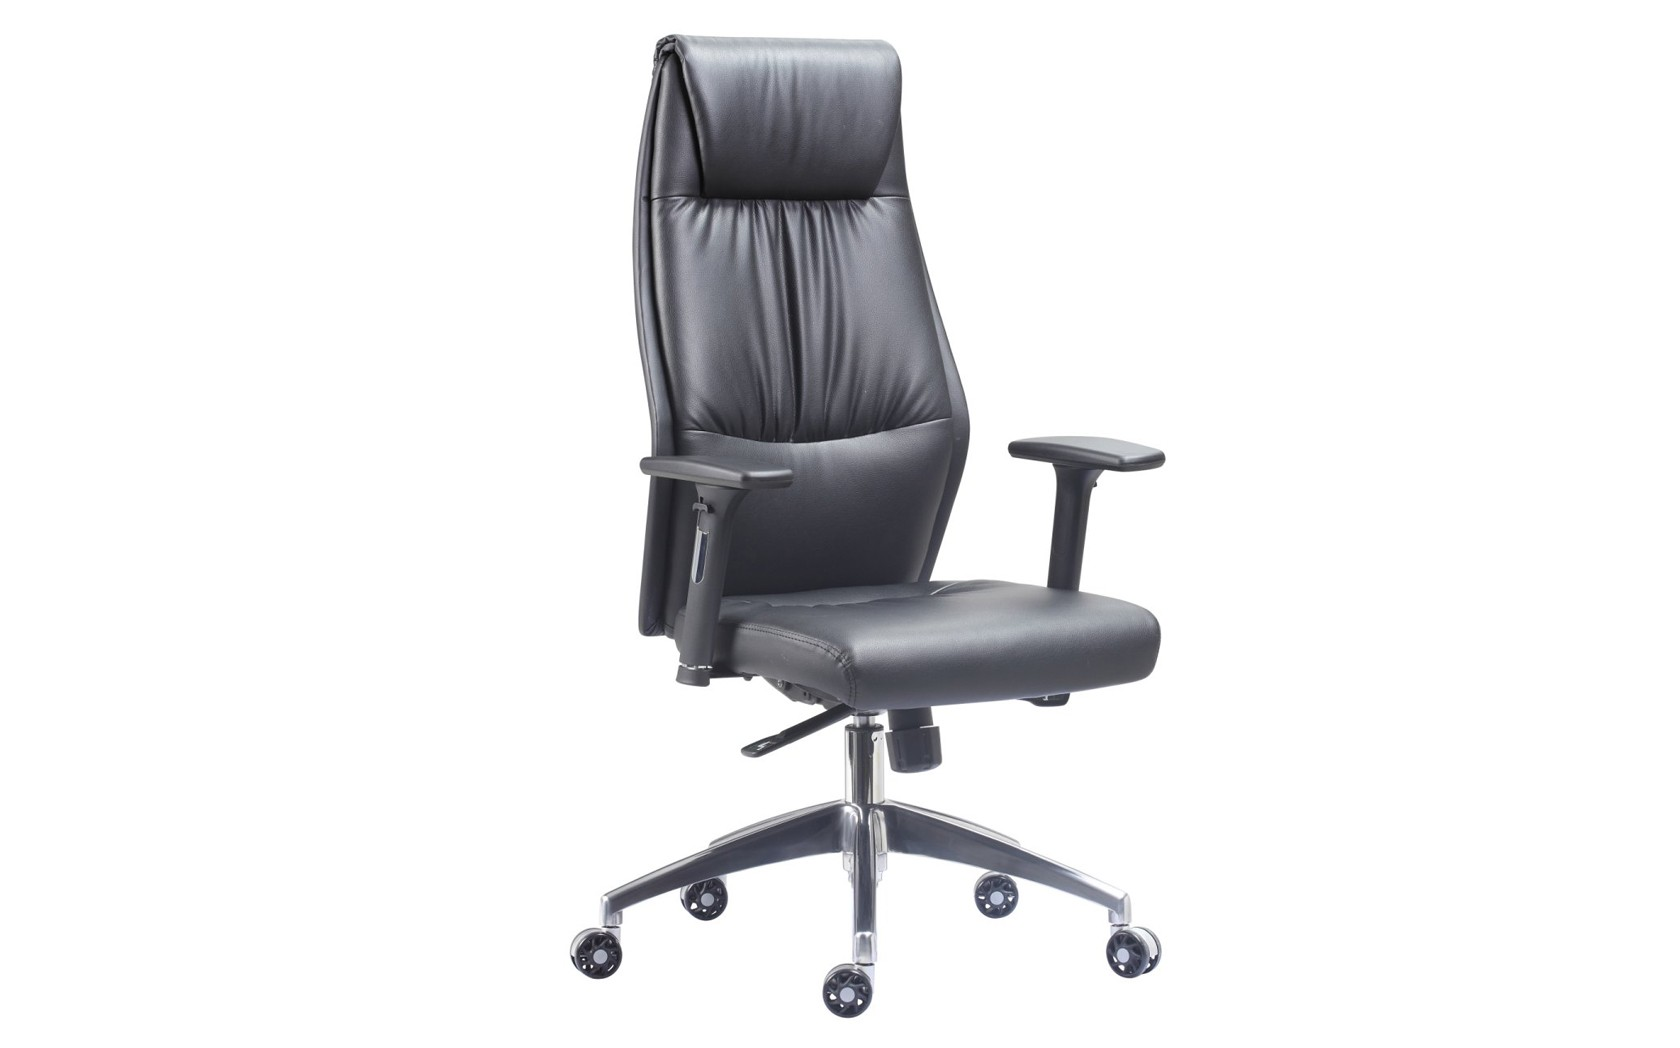 https://www.desksandchairs.ie/288-products